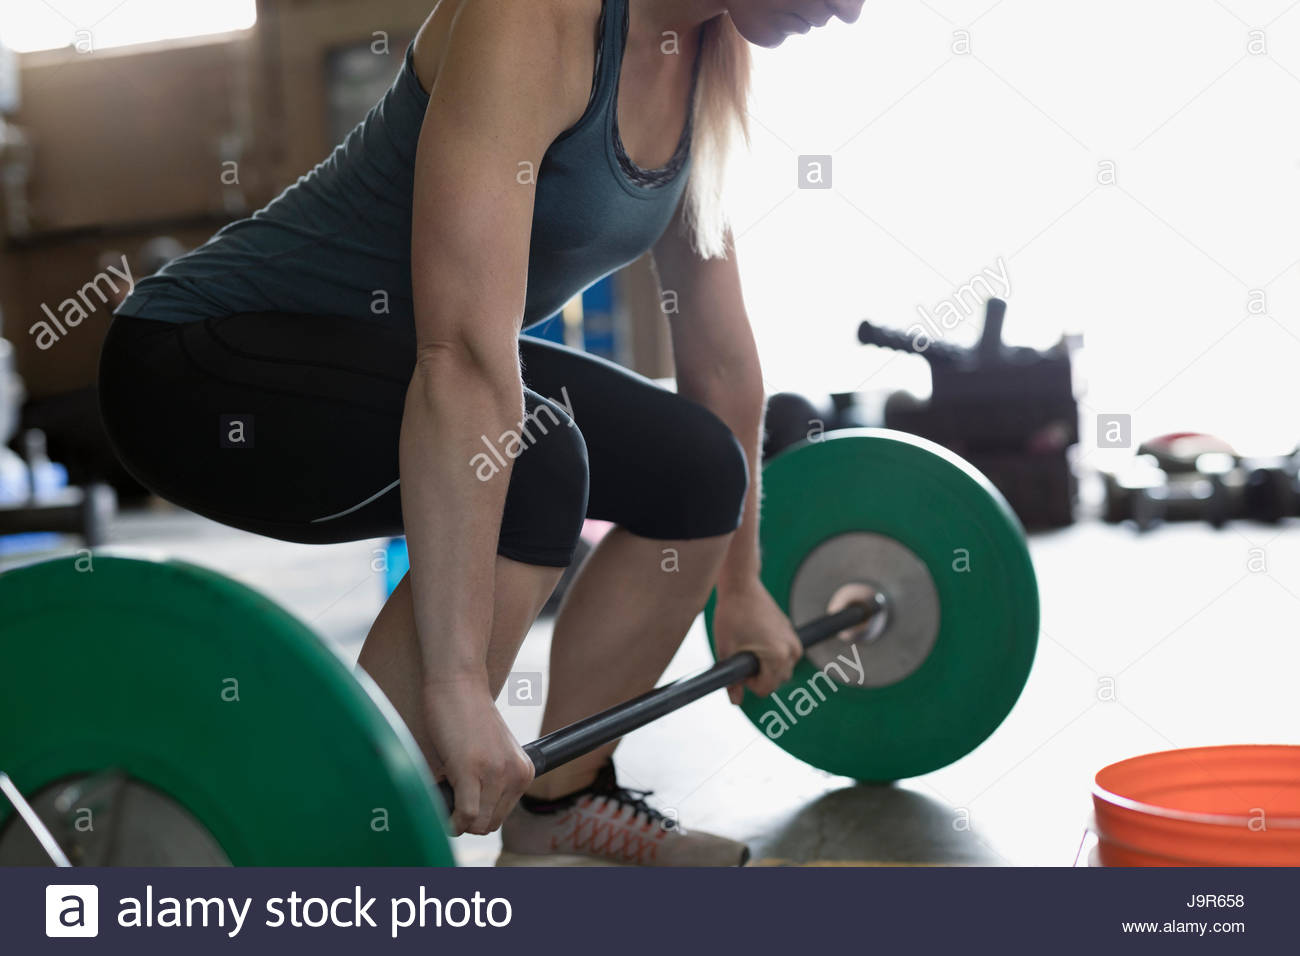 Strong woman weightlifting, doing barbell deadlift at gym Stock Photo